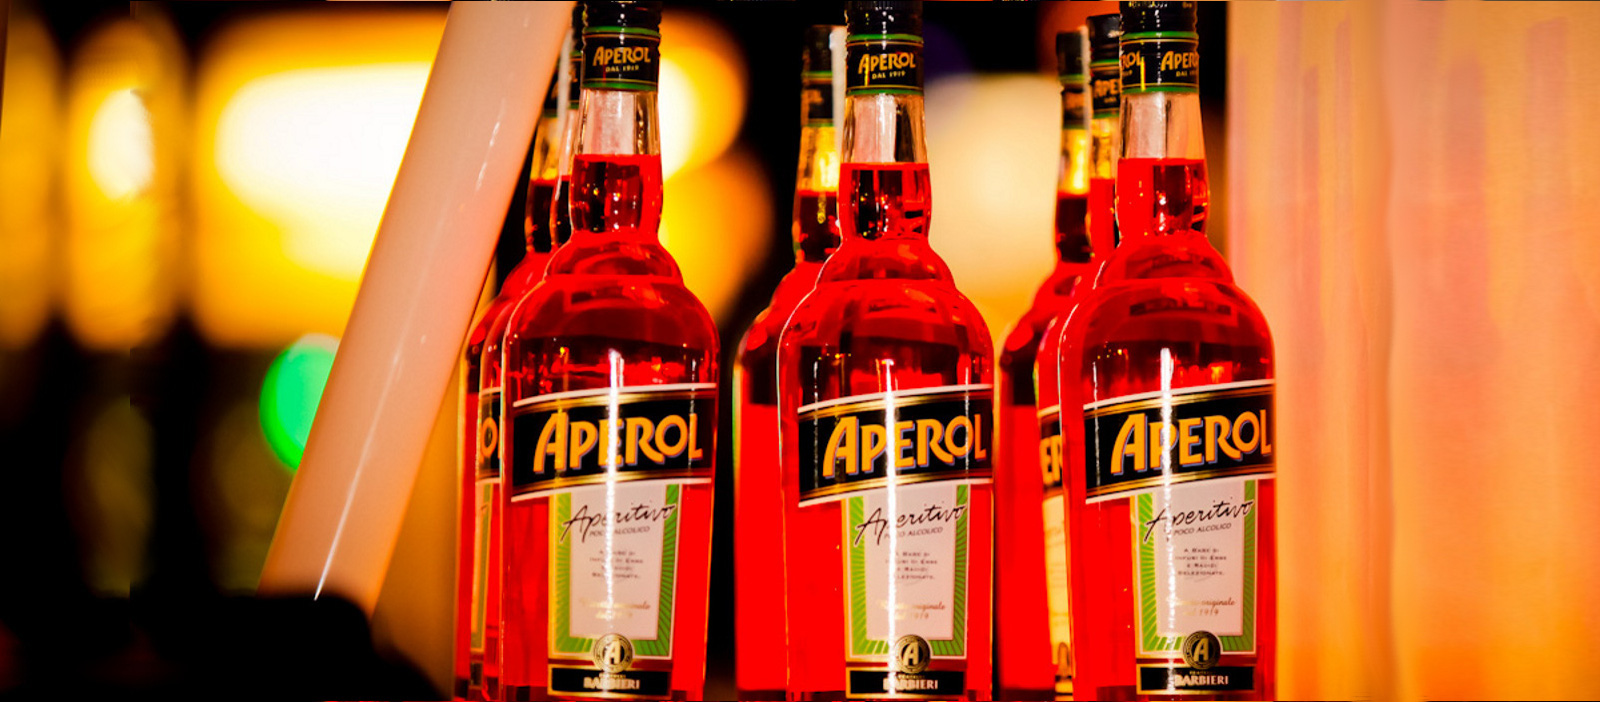 Aperol home page